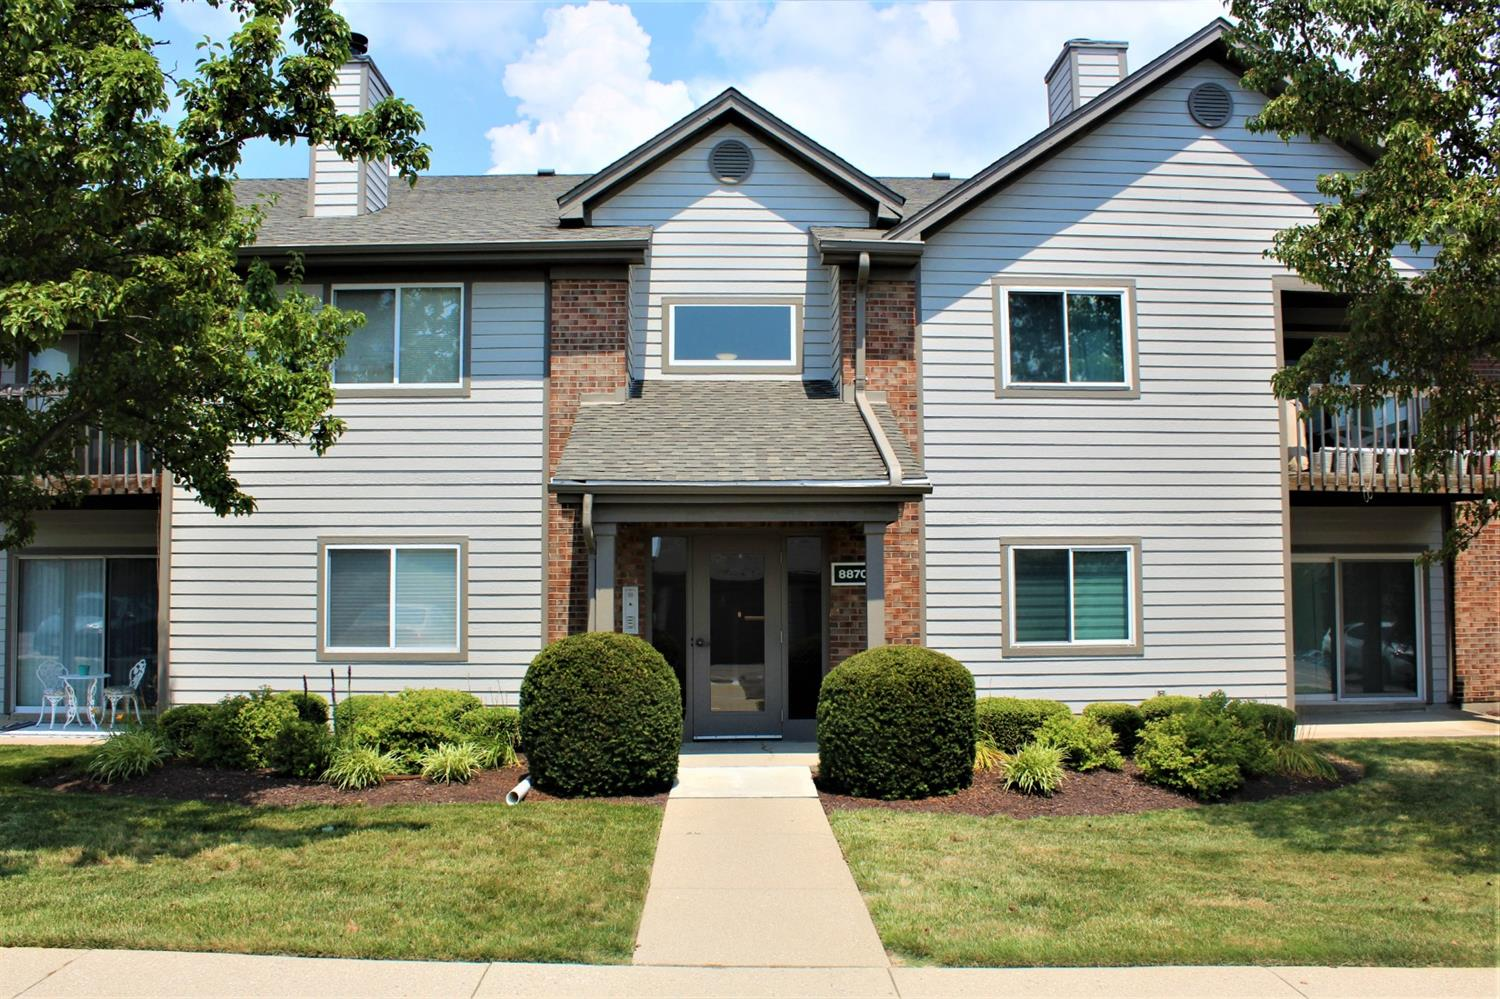 Property for sale at 8870 Eagleview Dr Unit: 3, West Chester,  Ohio 45069